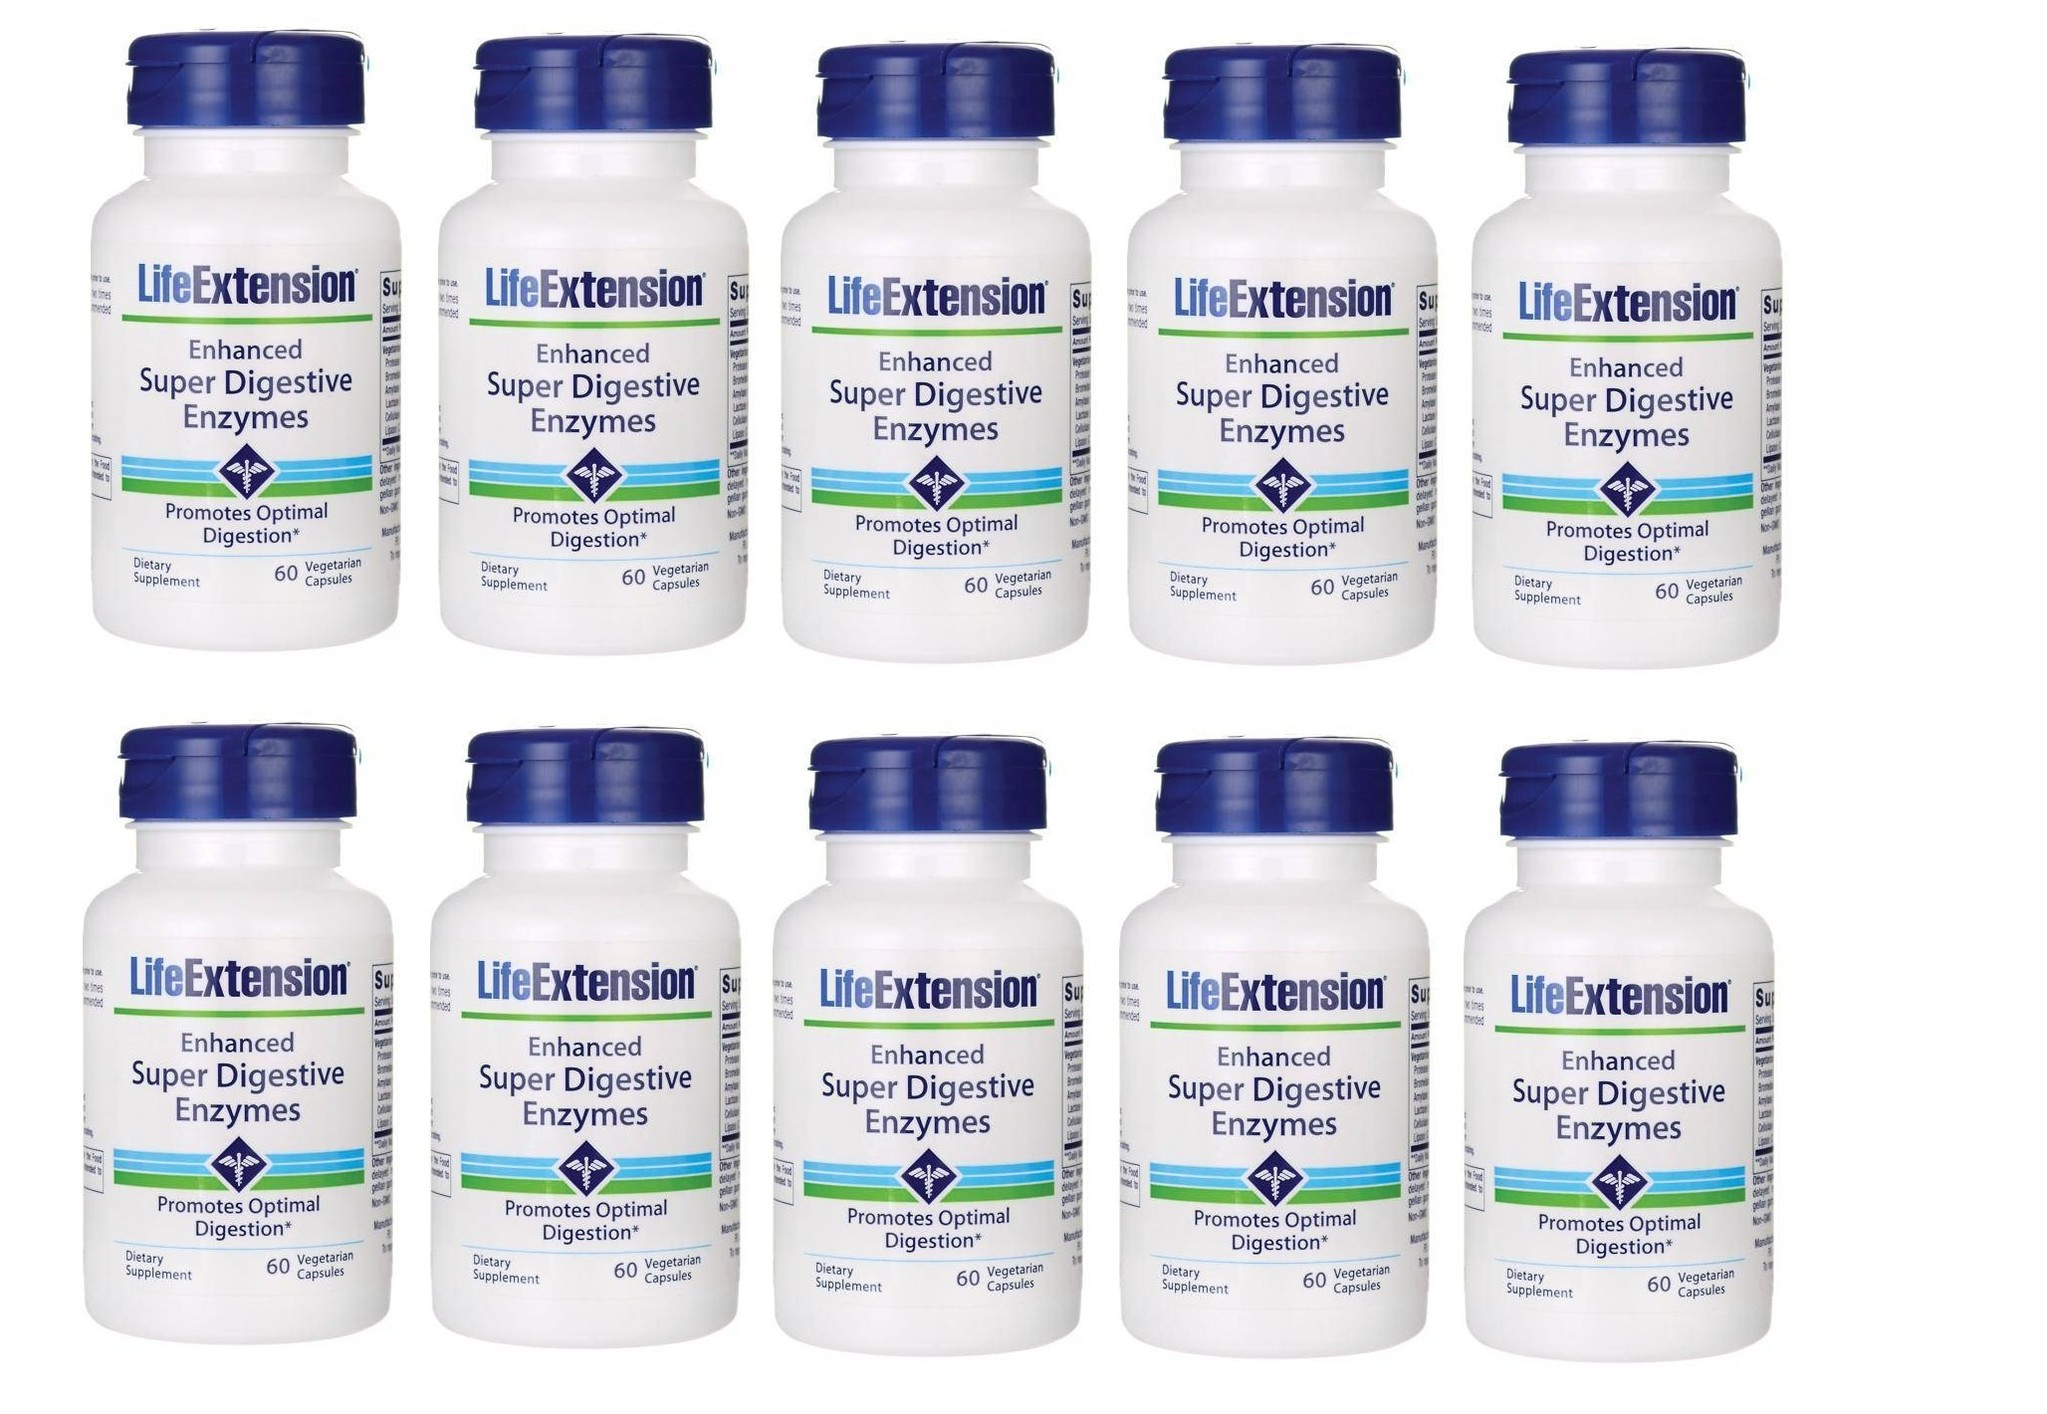 Life Extension Enhanced Super Digestive Enzymes, 60 Vegetarian Capsules, 10-packs